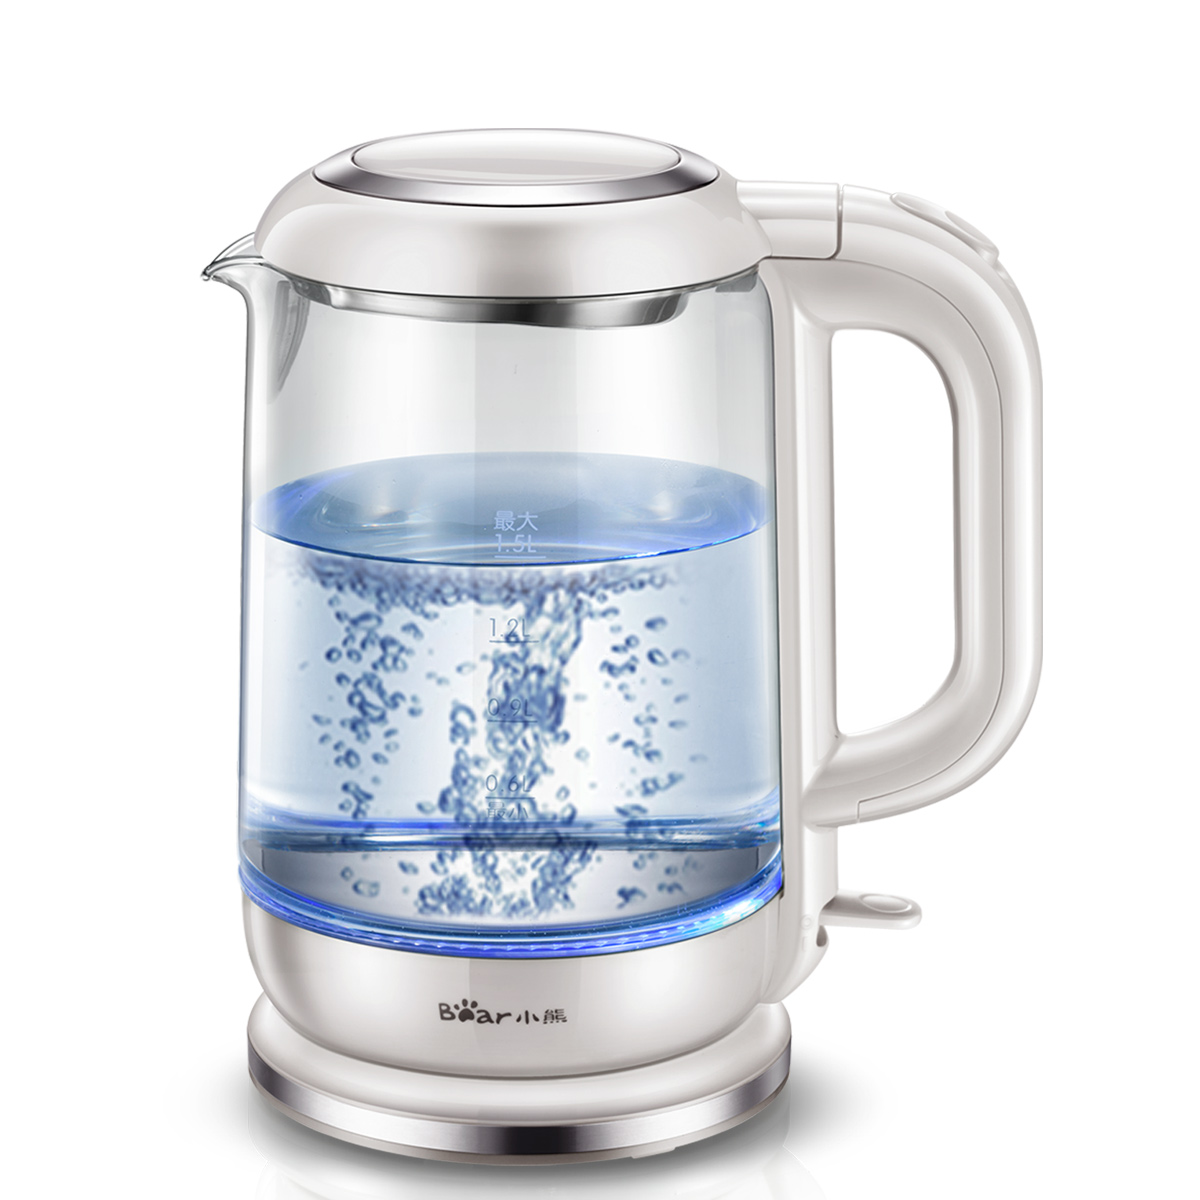 Household glass food grade 304 stainless steel electric kettle kitchen water pot